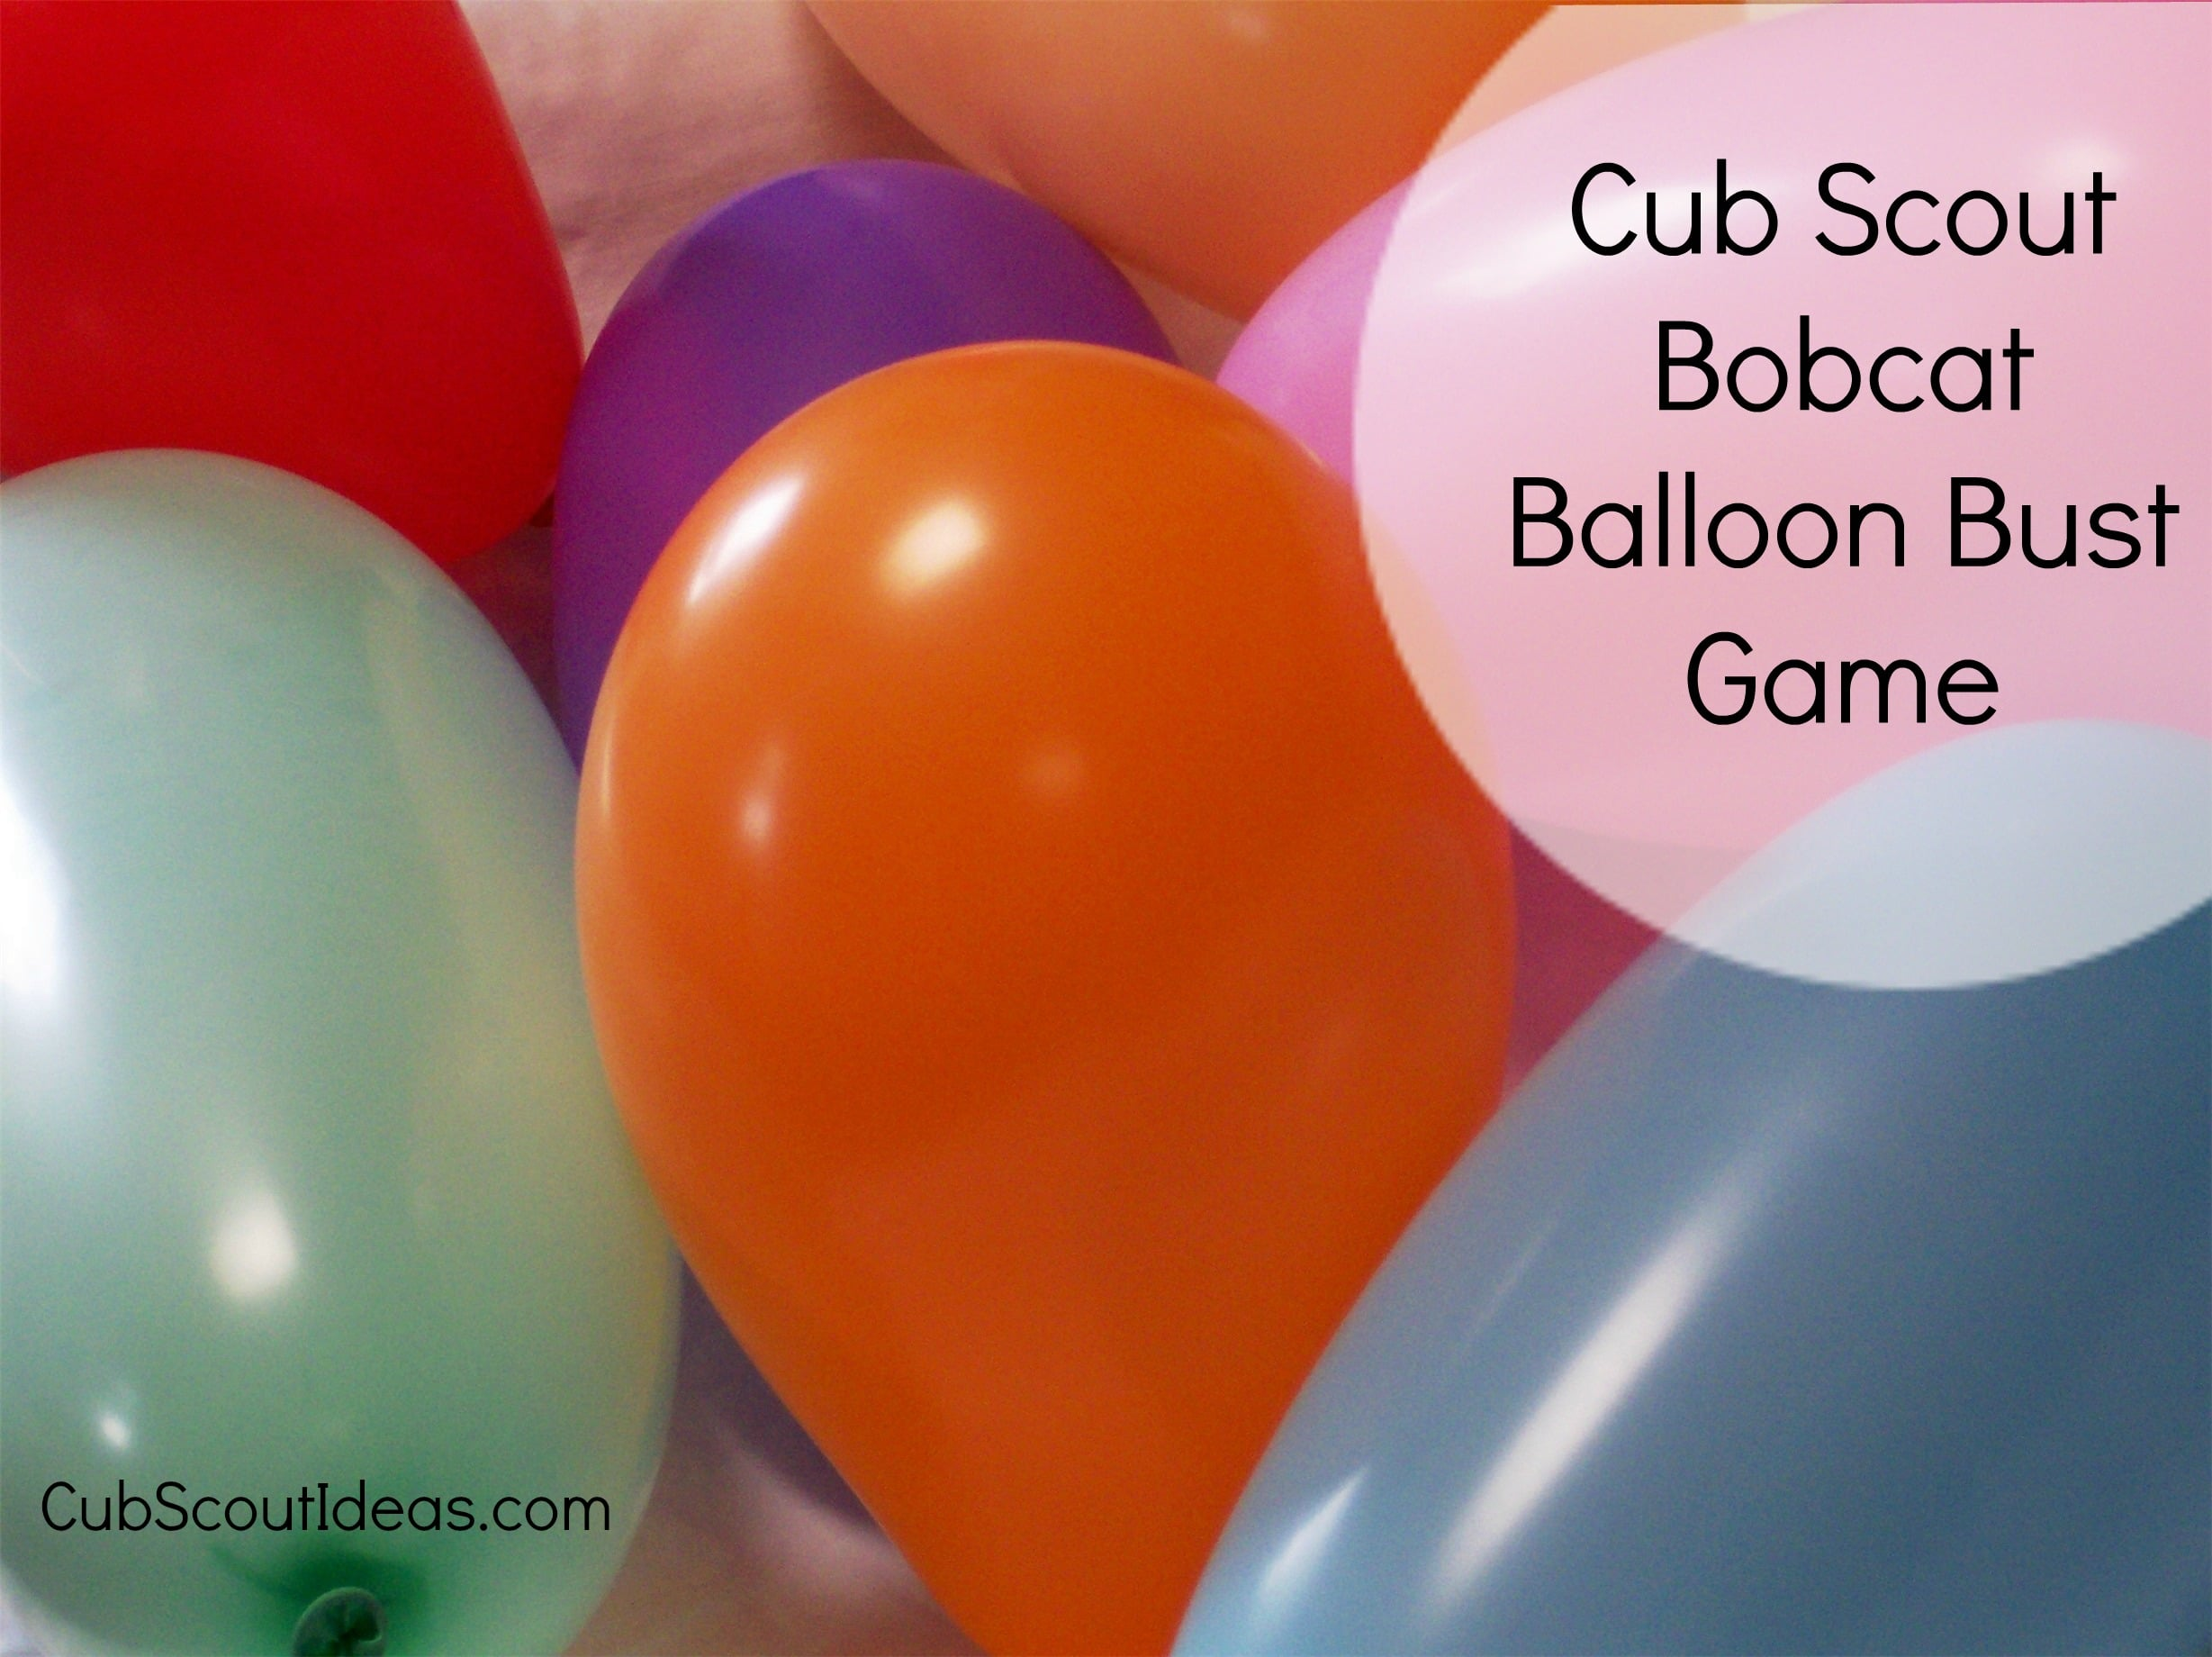 Cub Scout Bobcat Requirements:  Balloon Bust Game